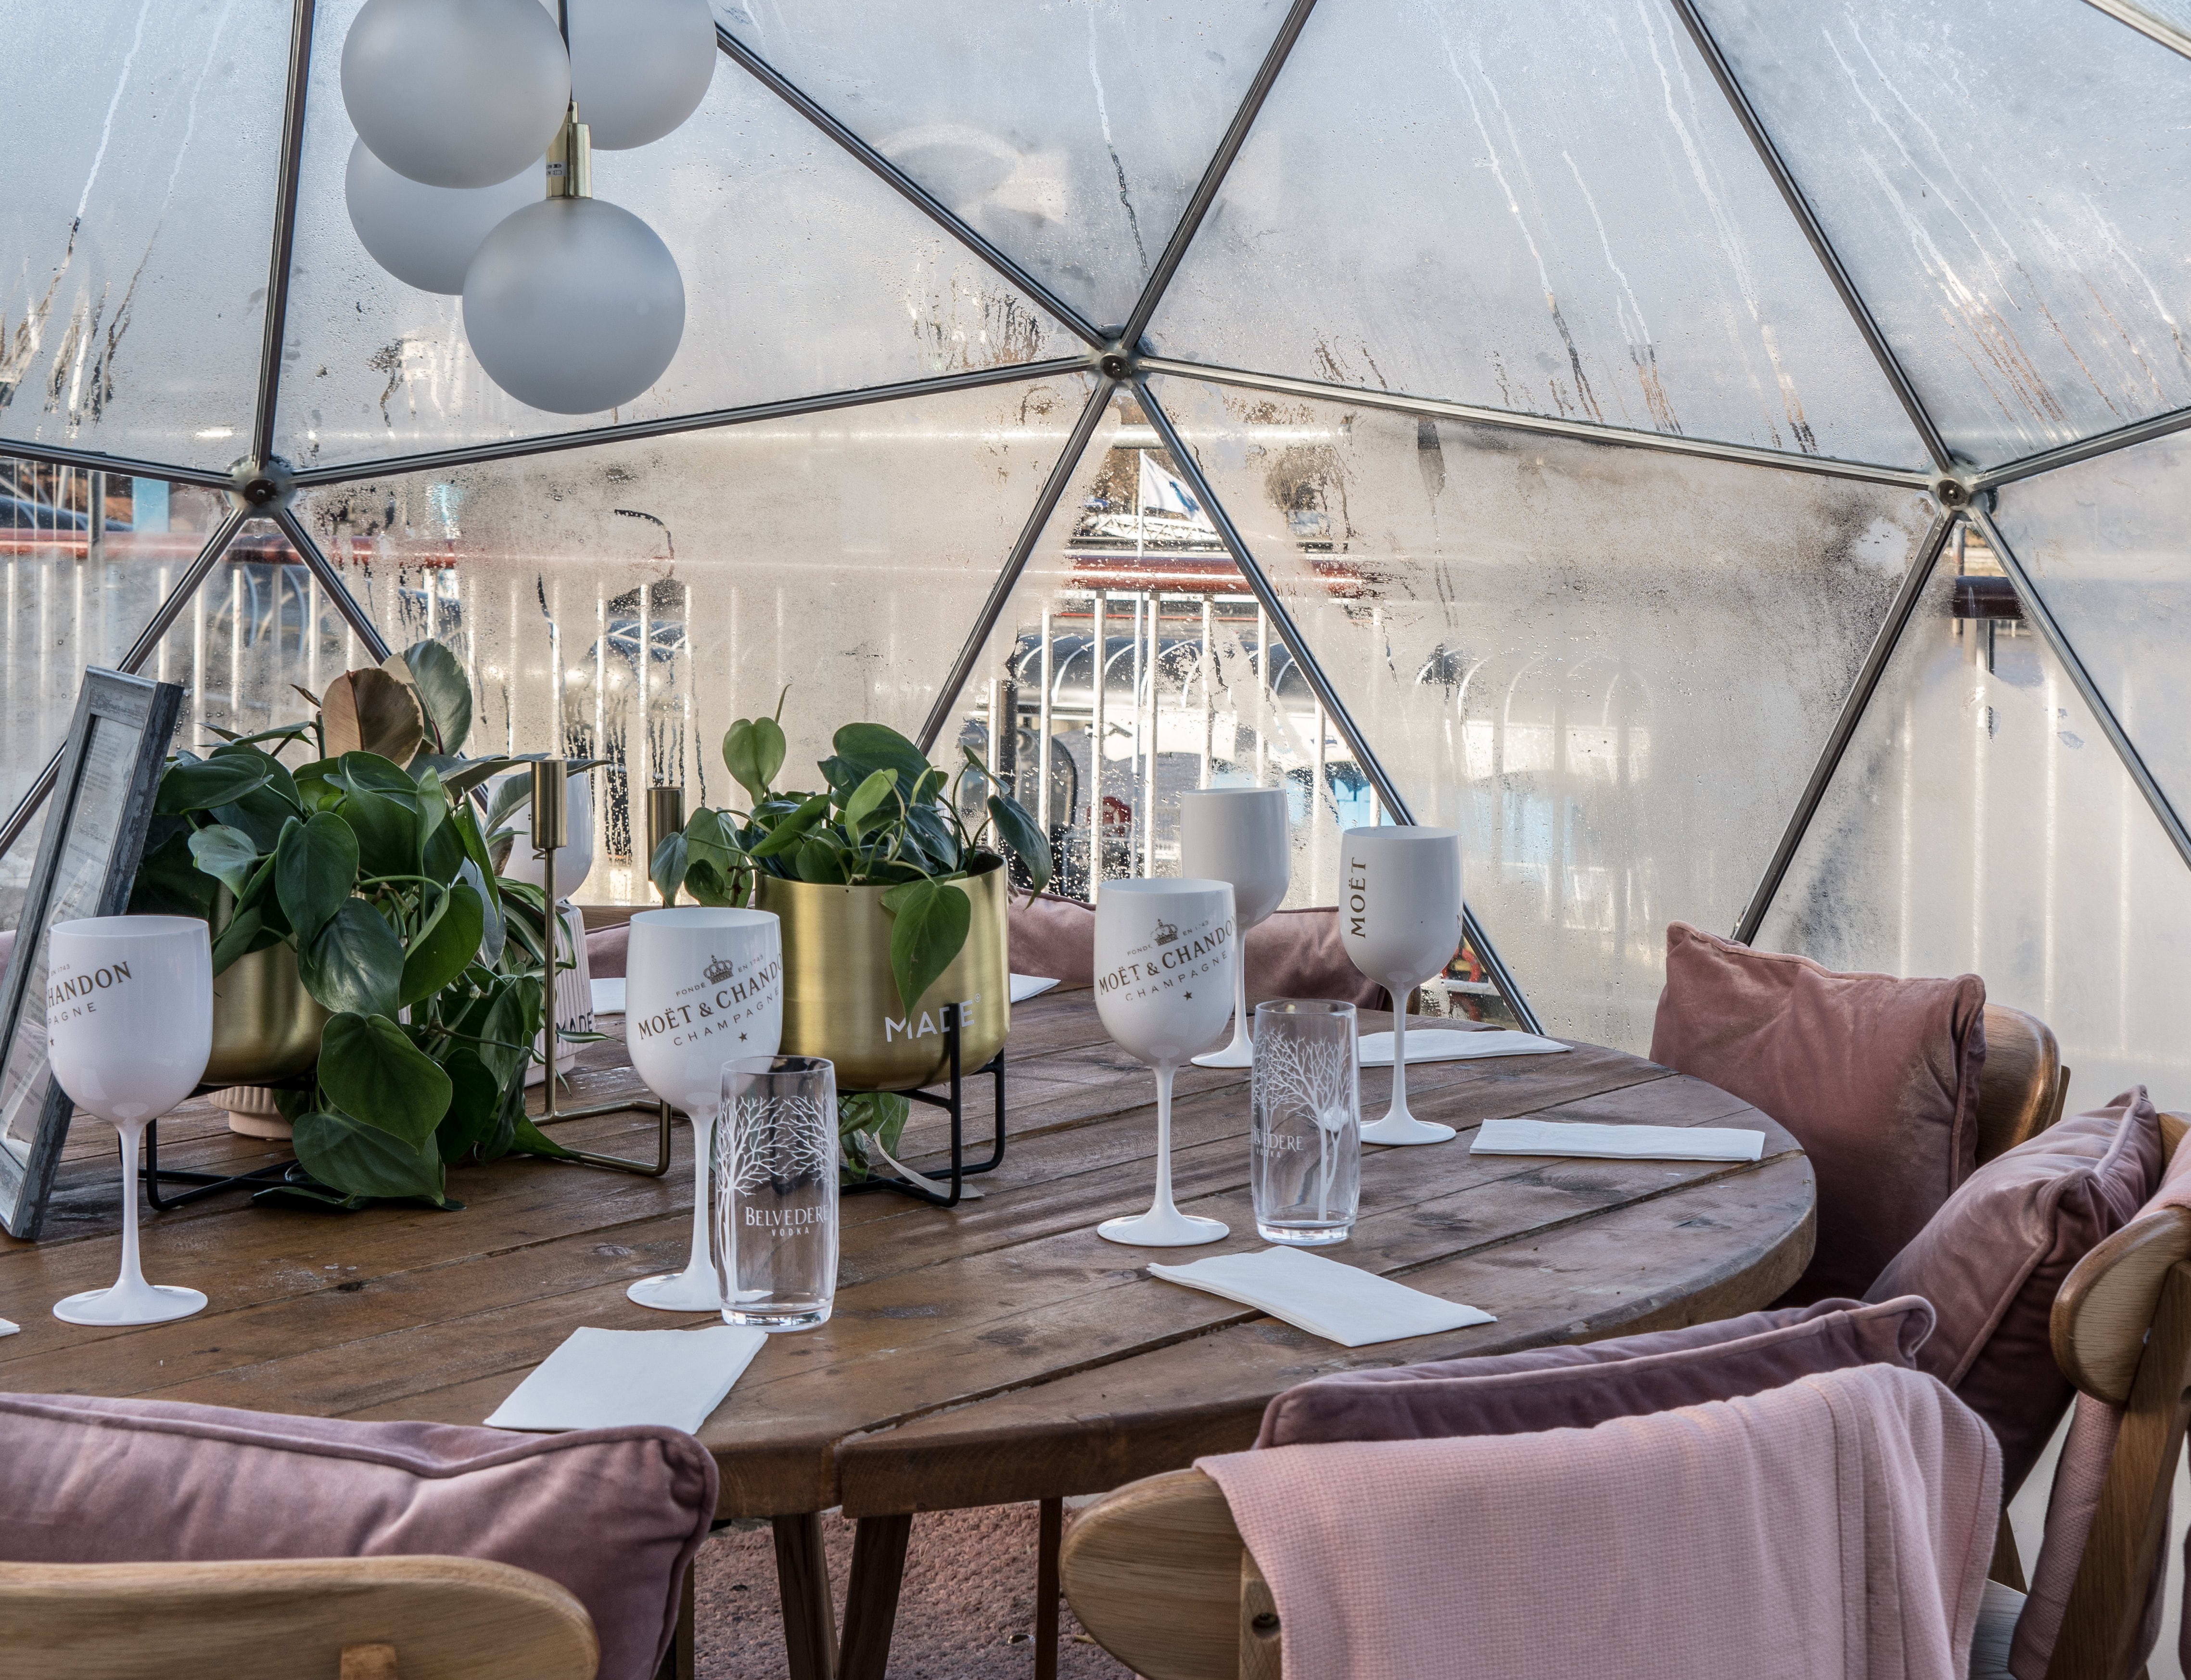 5 Popular Ways Restaurant Operators Can Extend Outdoor Dining Into Colder Months